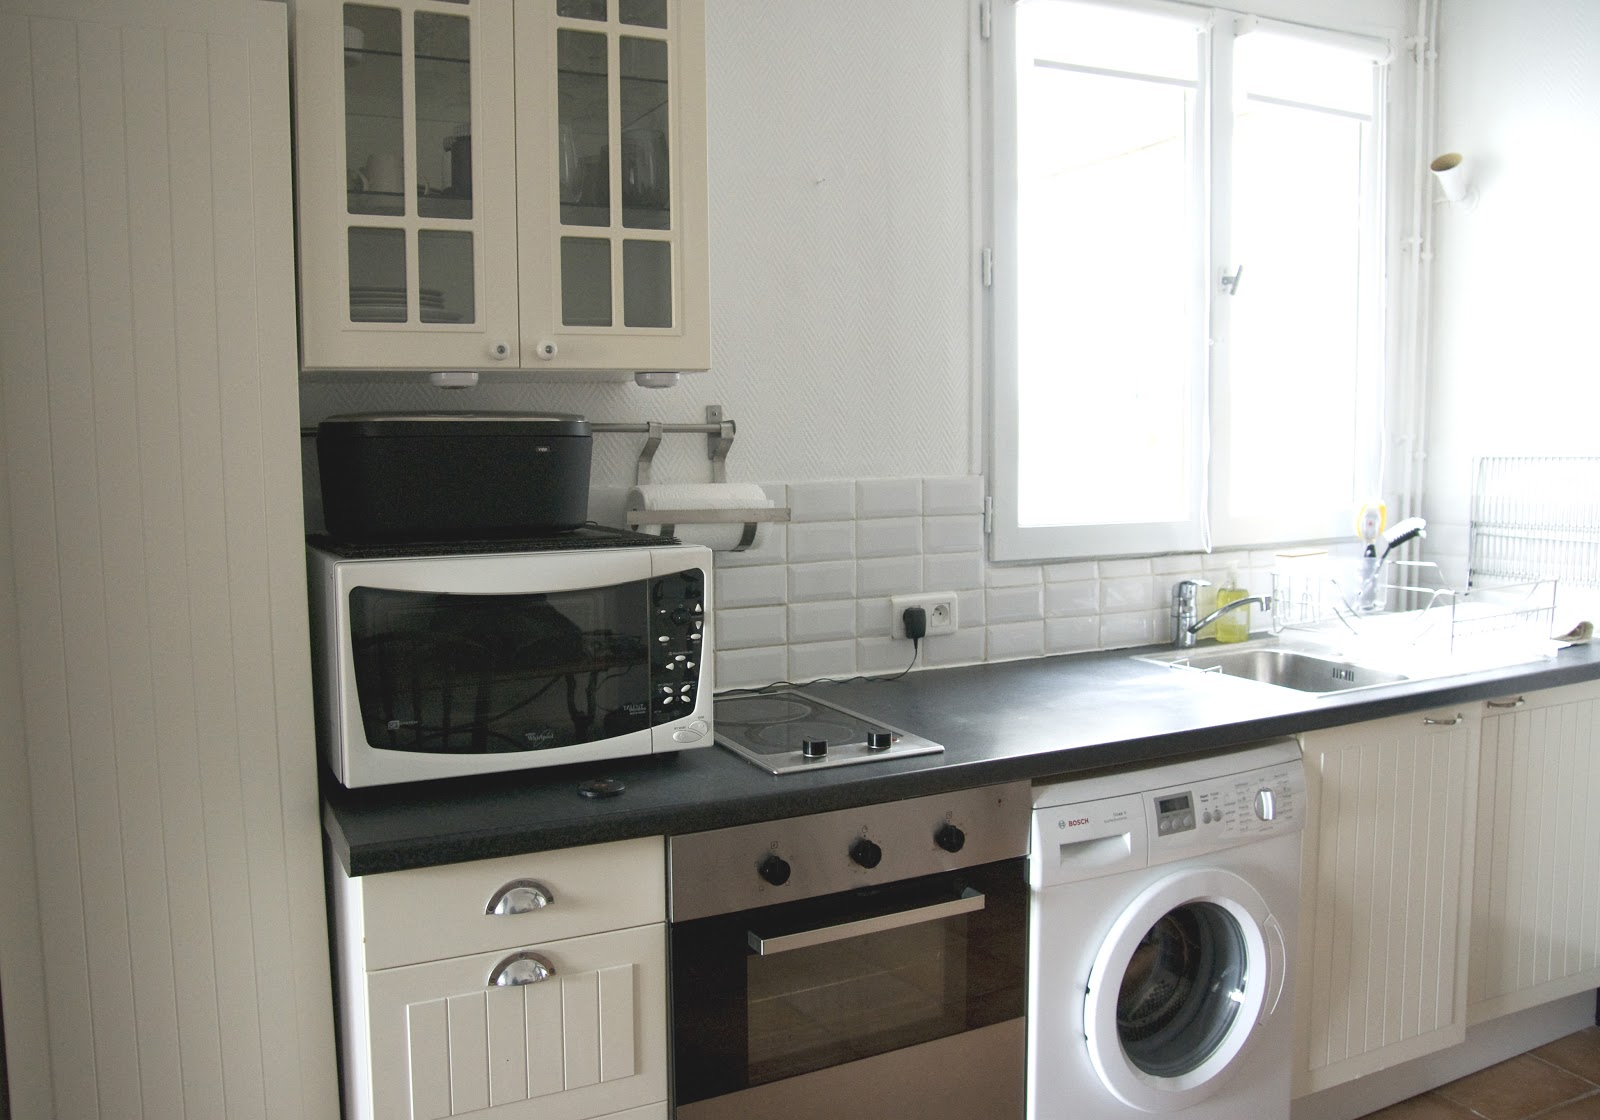 Paris concierge for Kitchen cabinet washing machine